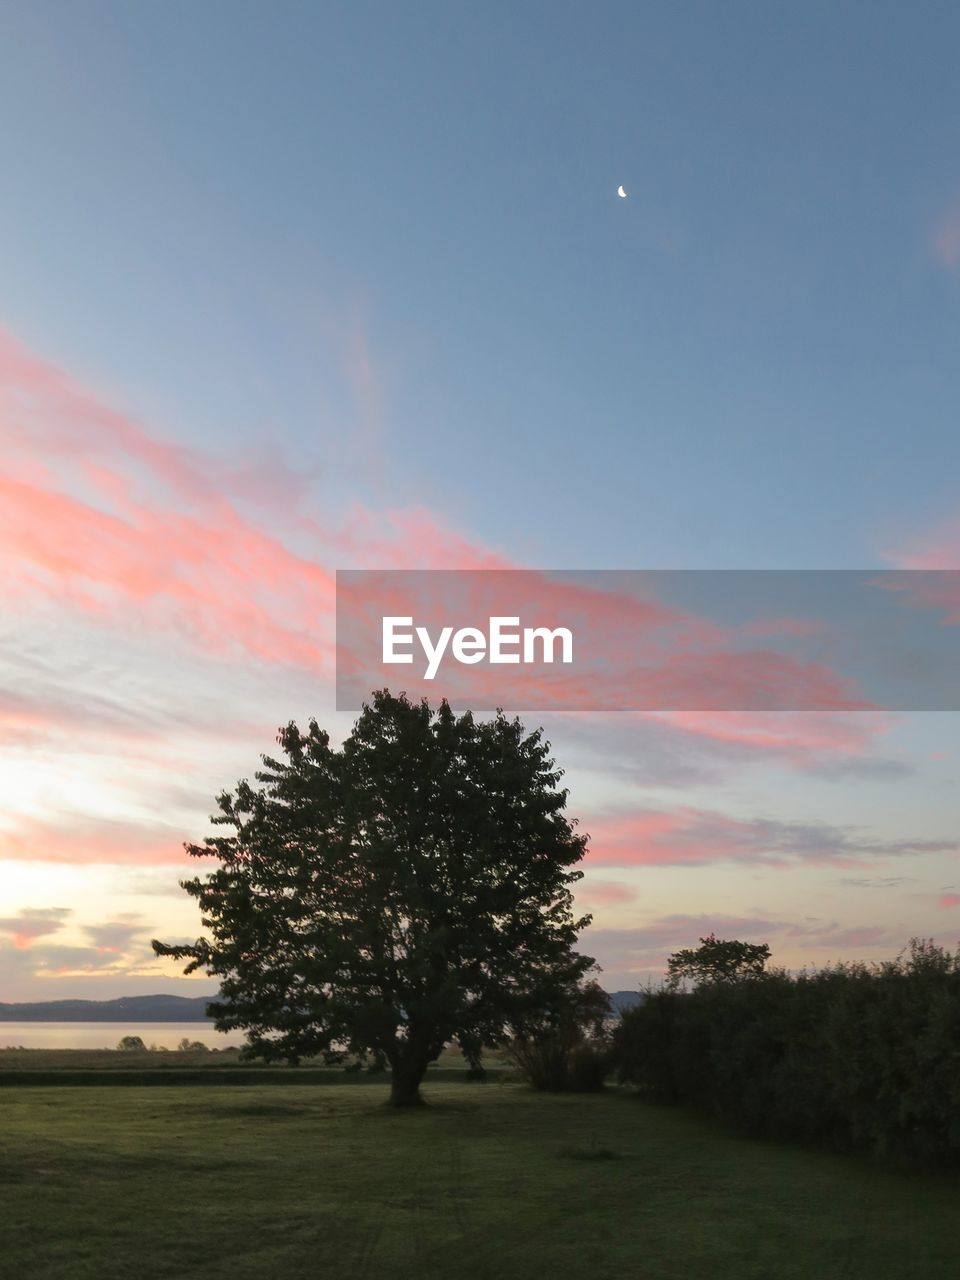 sky, tree, plant, beauty in nature, tranquility, tranquil scene, sunset, scenics - nature, land, field, moon, cloud - sky, nature, growth, no people, landscape, environment, grass, non-urban scene, idyllic, outdoors